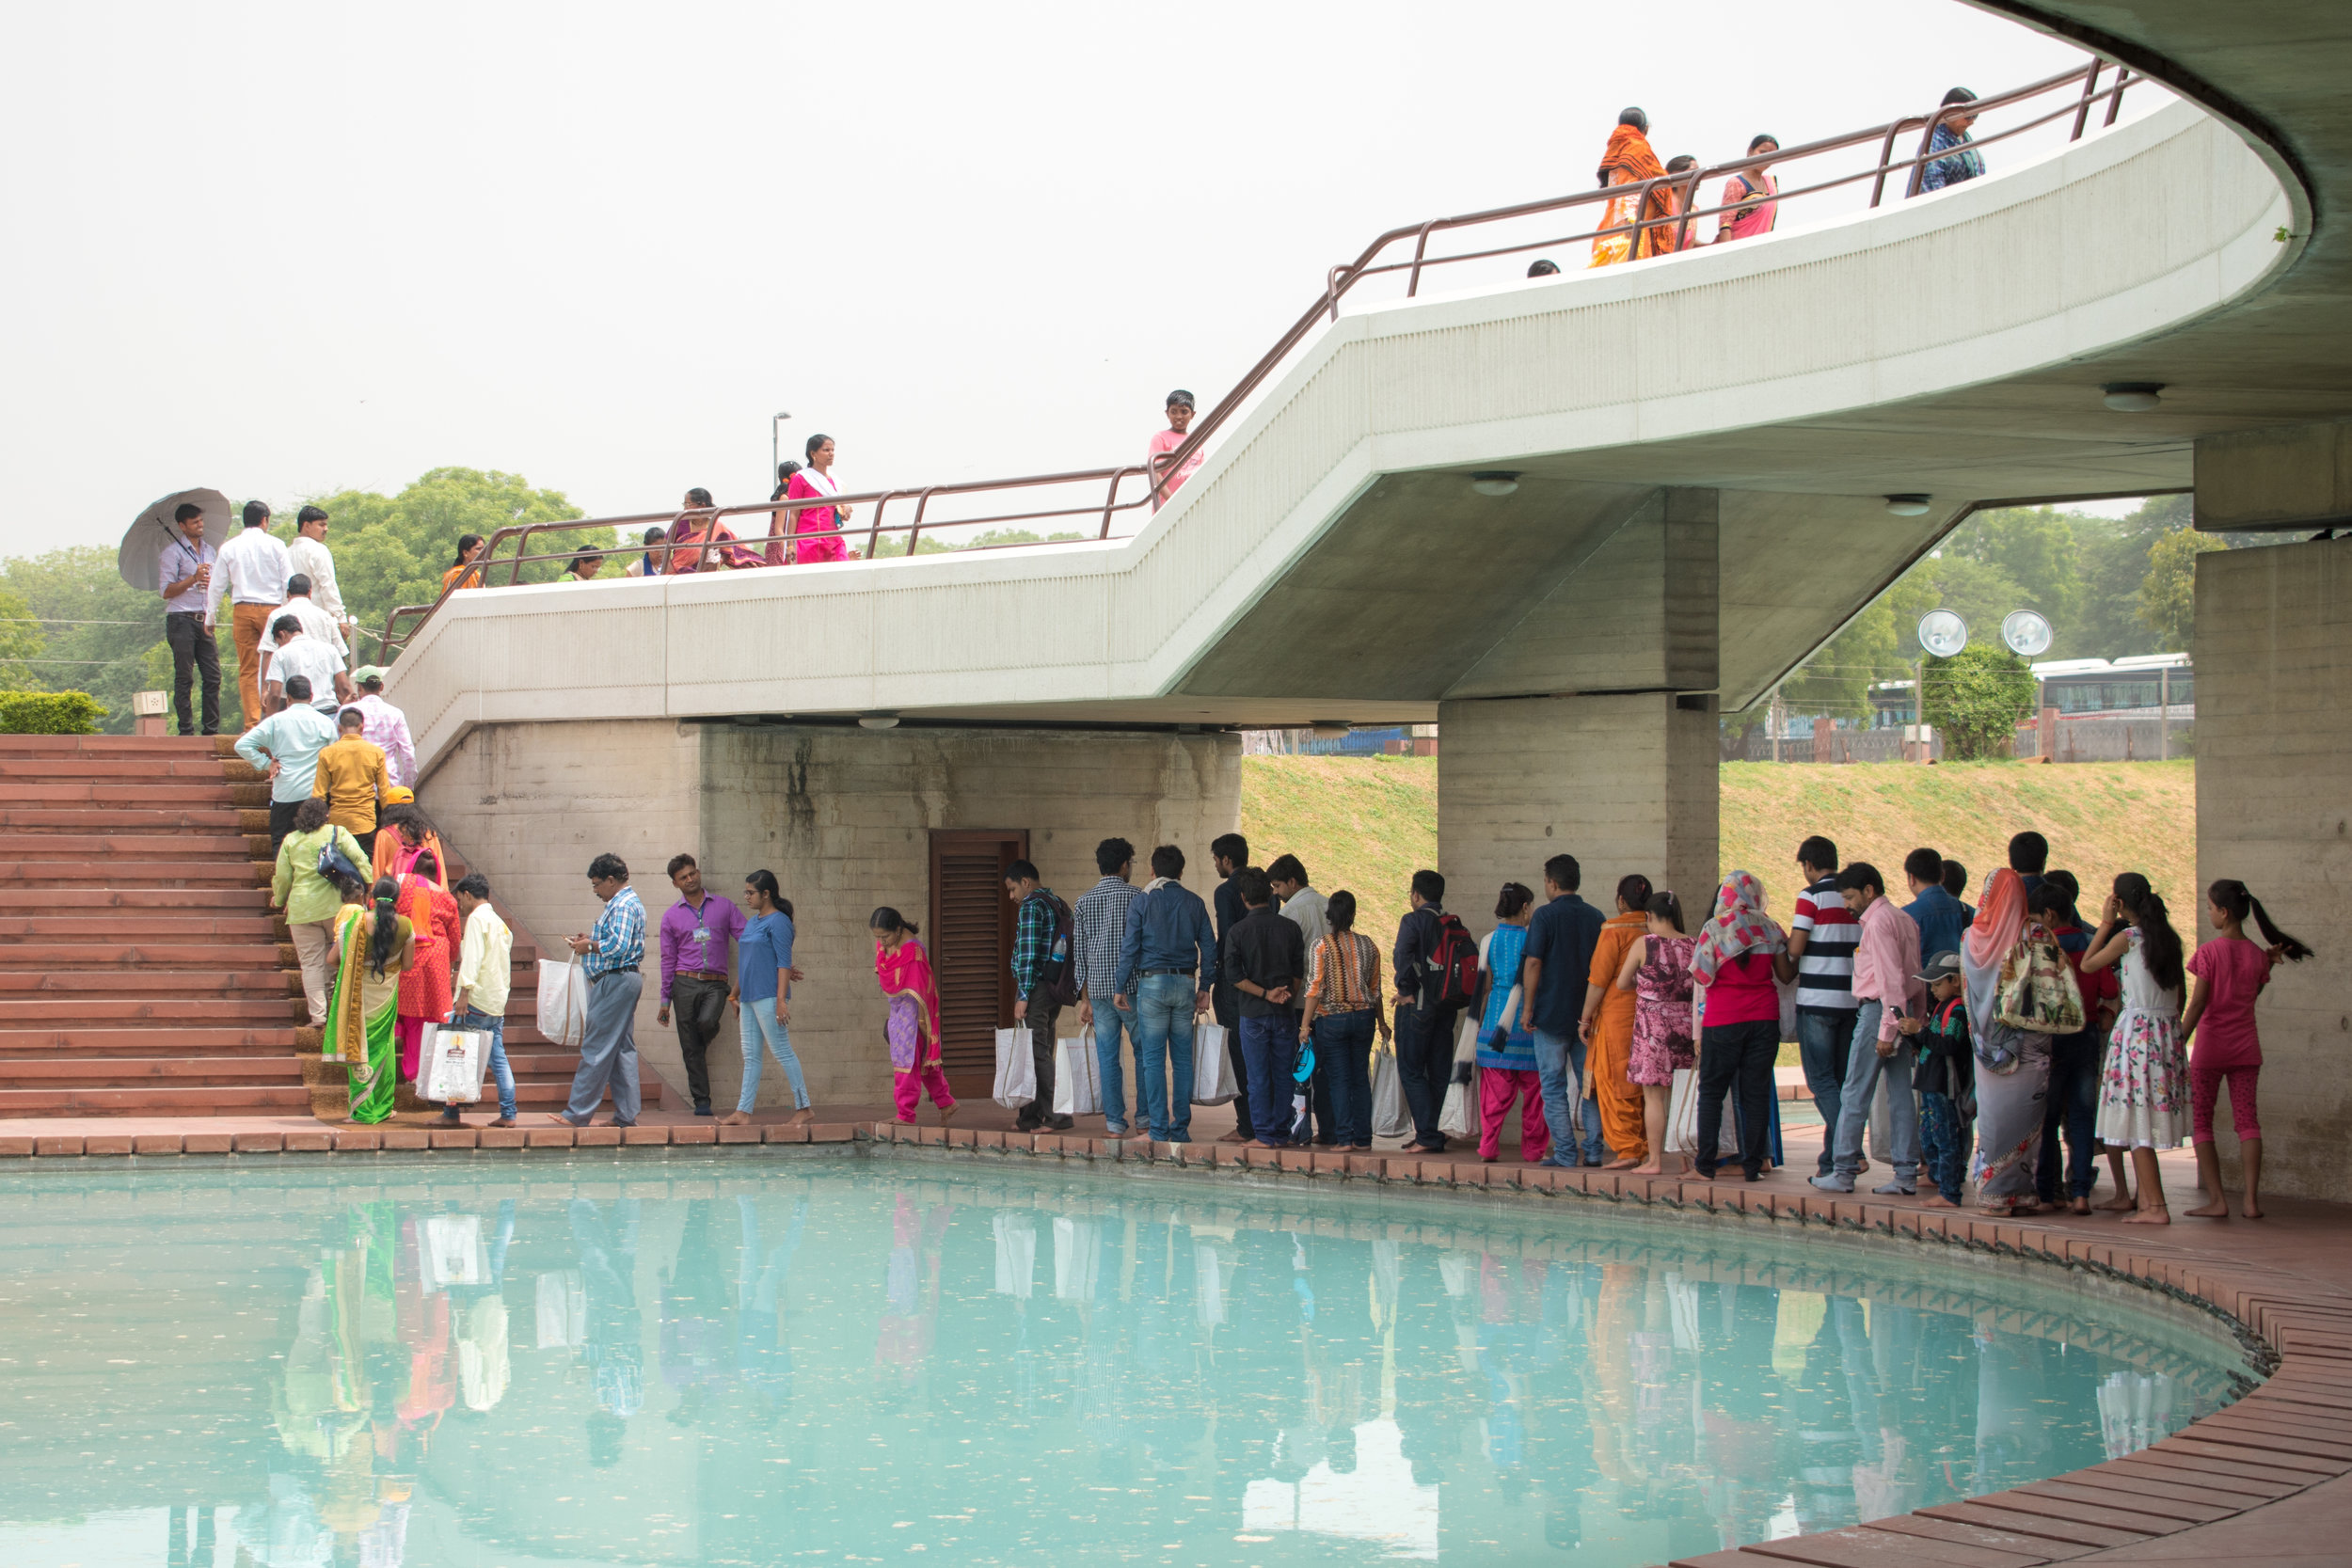 Queueing For The Lotus Temple in Delhi, India